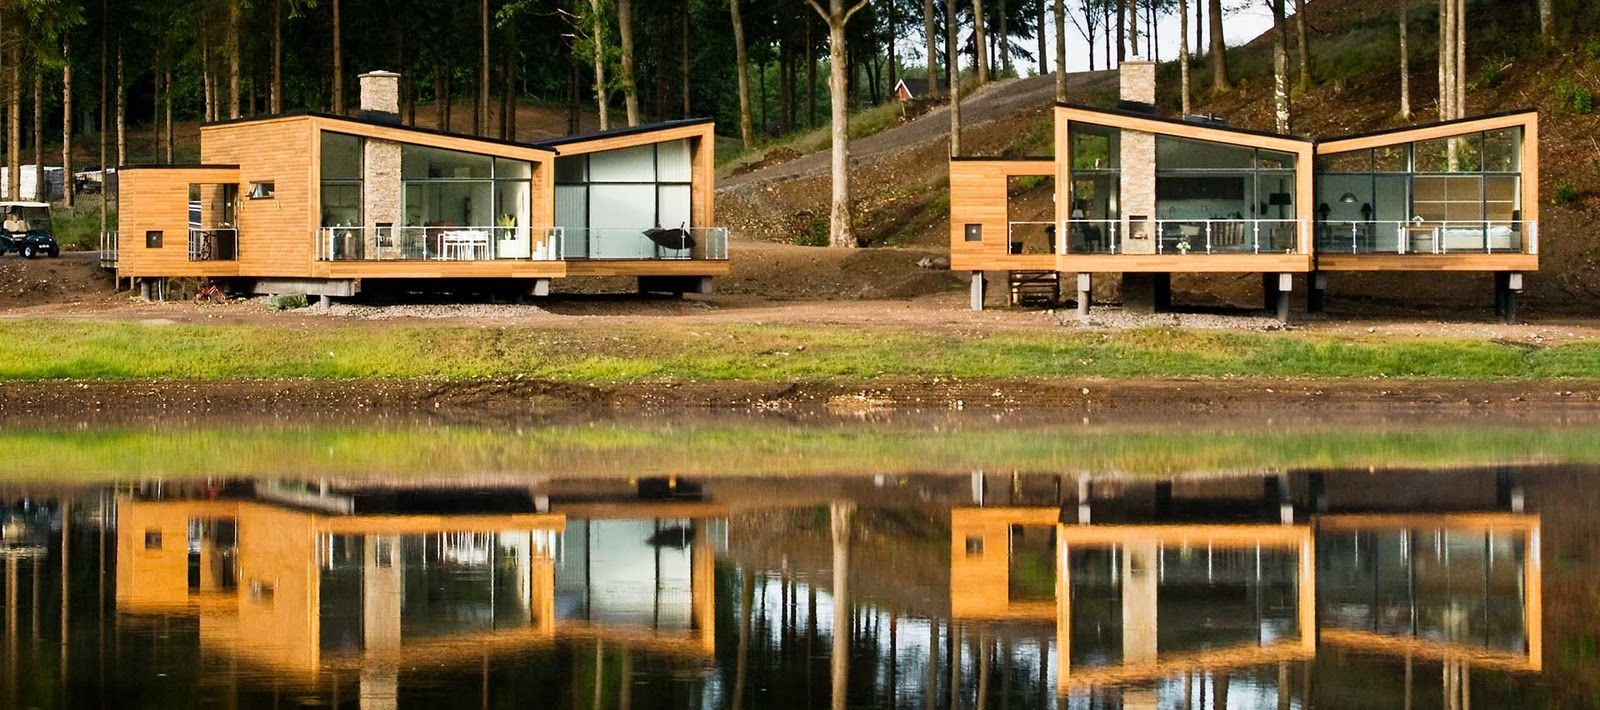 Modern house on wooden stilt supports google search p1